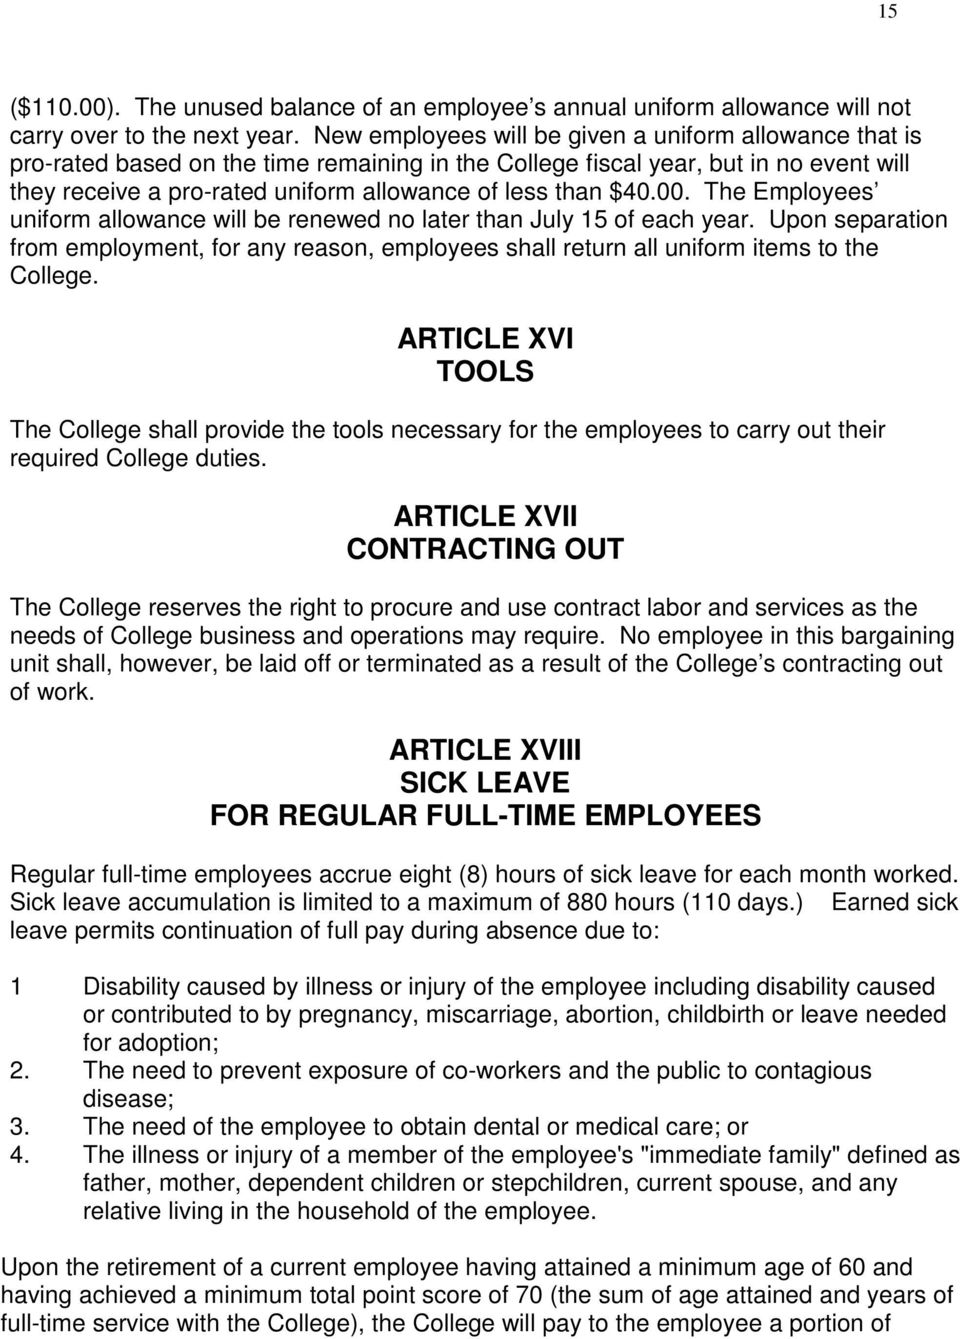 $40.00. The Employees uniform allowance will be renewed no later than July 15 of each year. Upon separation from employment, for any reason, employees shall return all uniform items to the College.